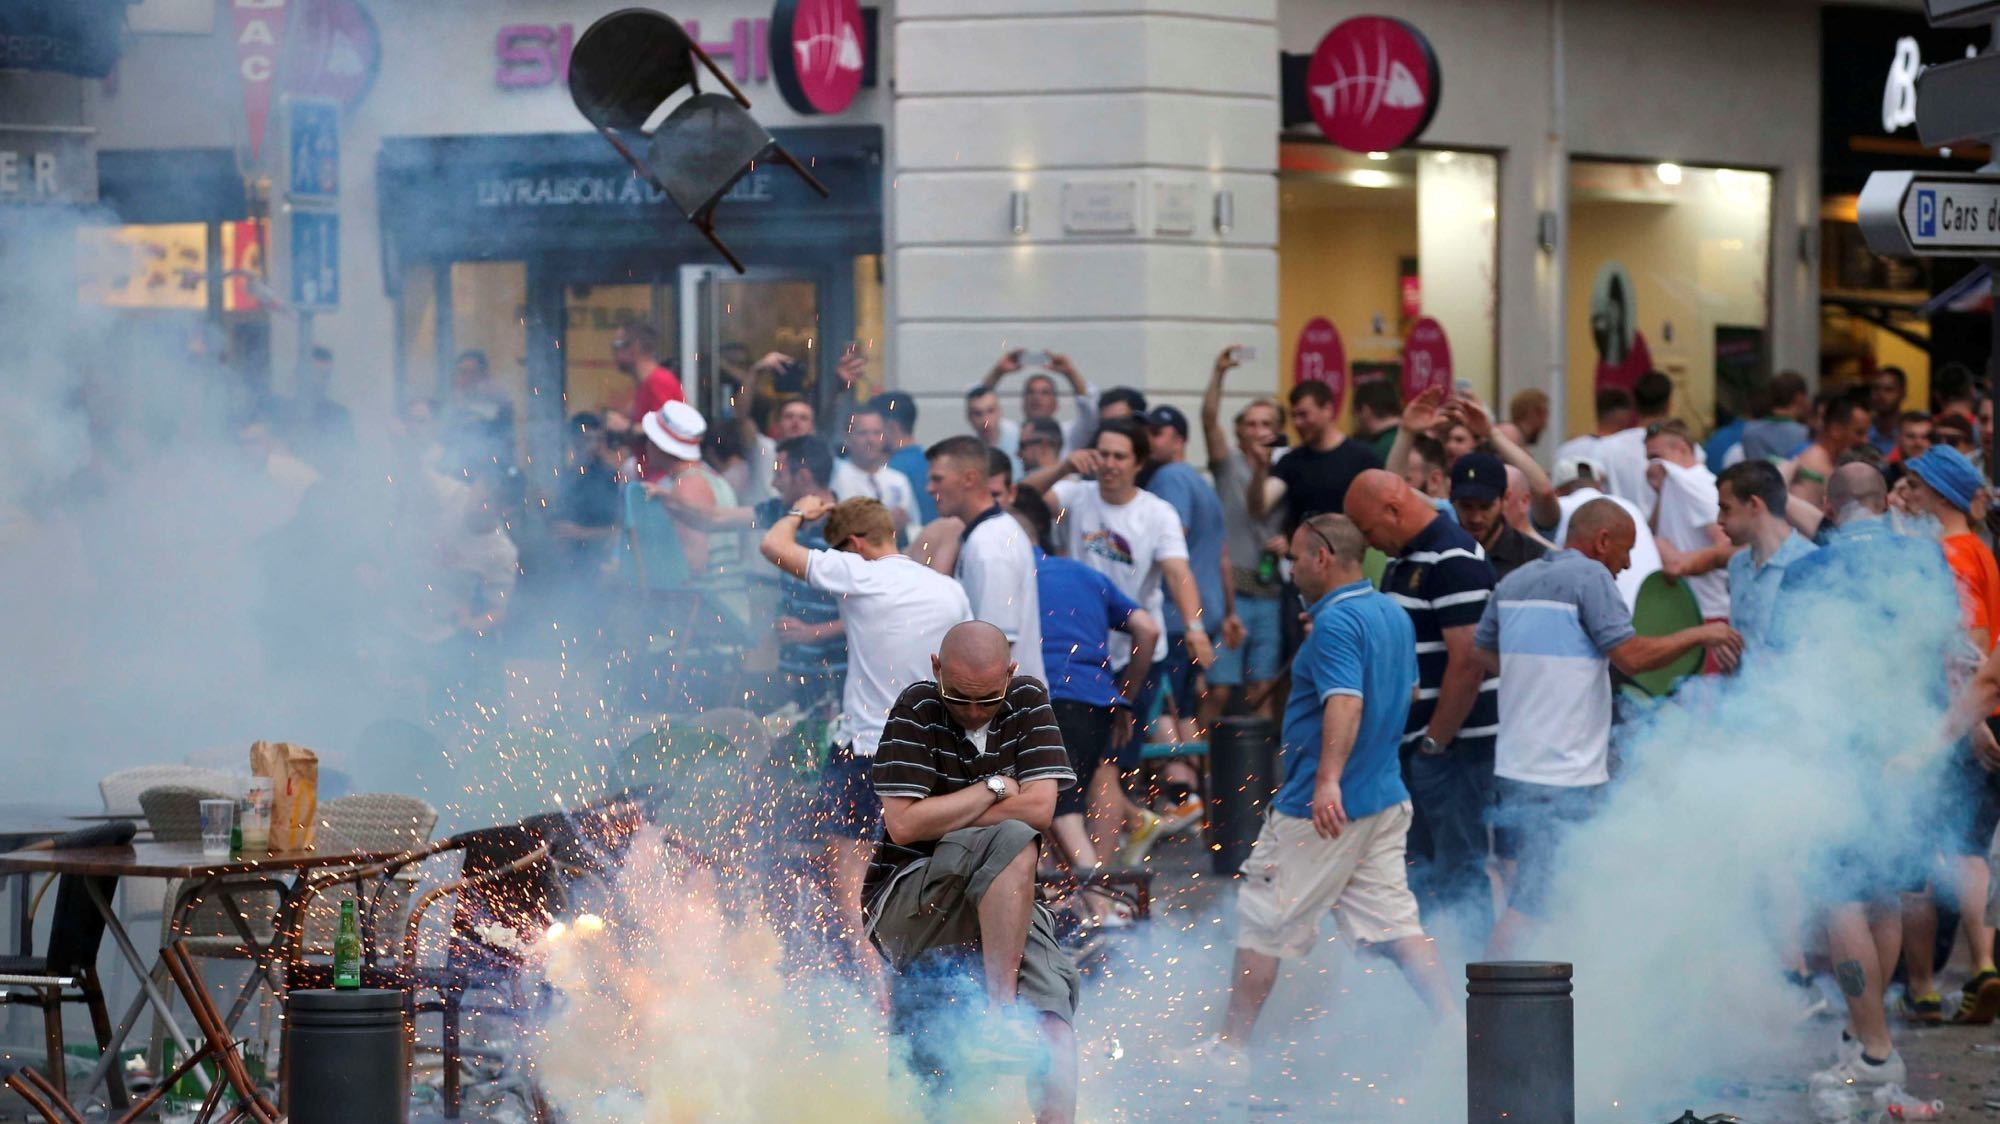 English and Russian Soccer Fans Clash Violently in Marseille Ahead of Euro 2016 Match